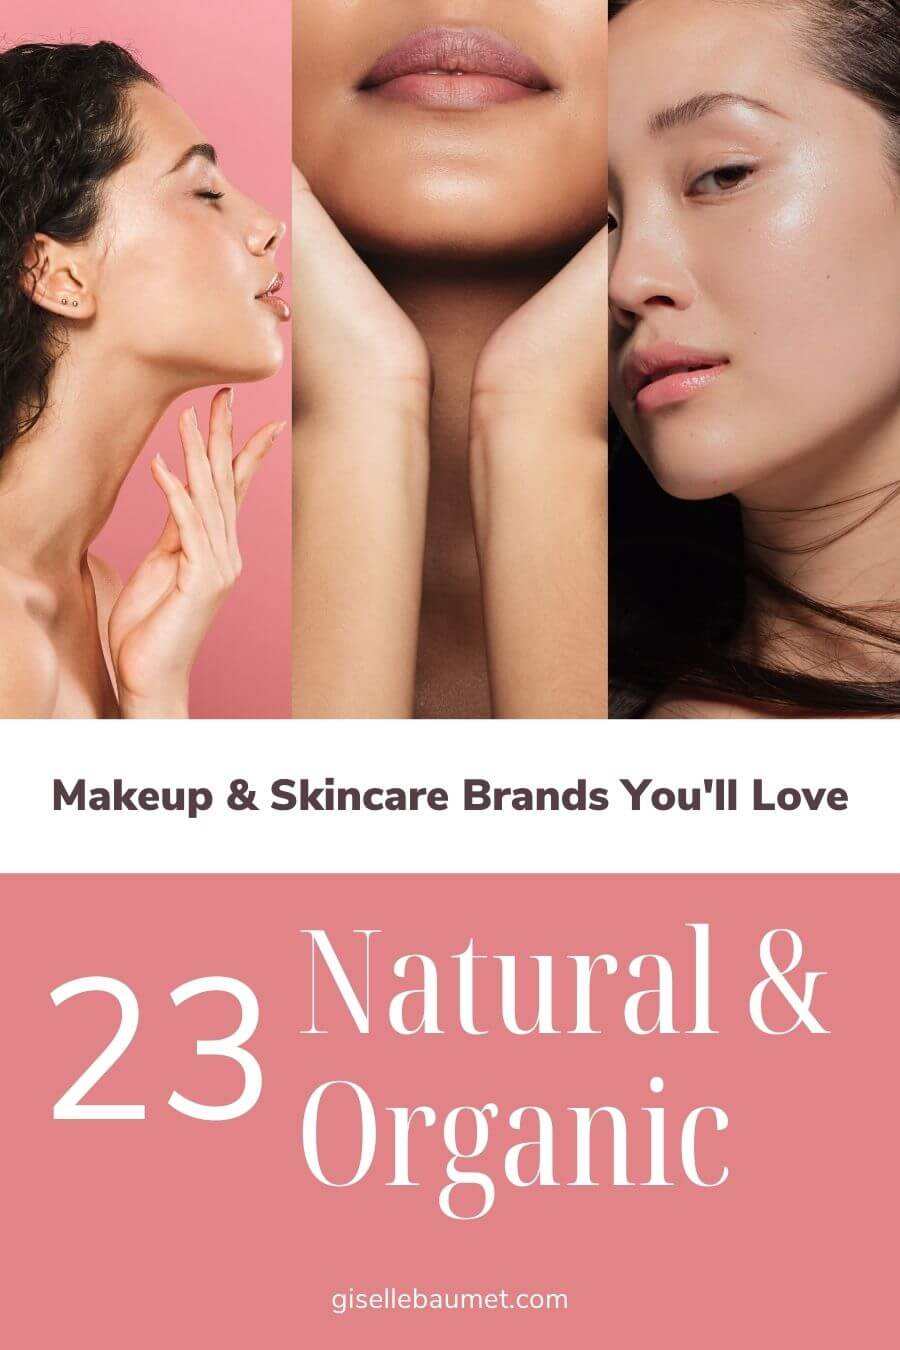 Pin for later 23 natural and organic makeup and skincare brand